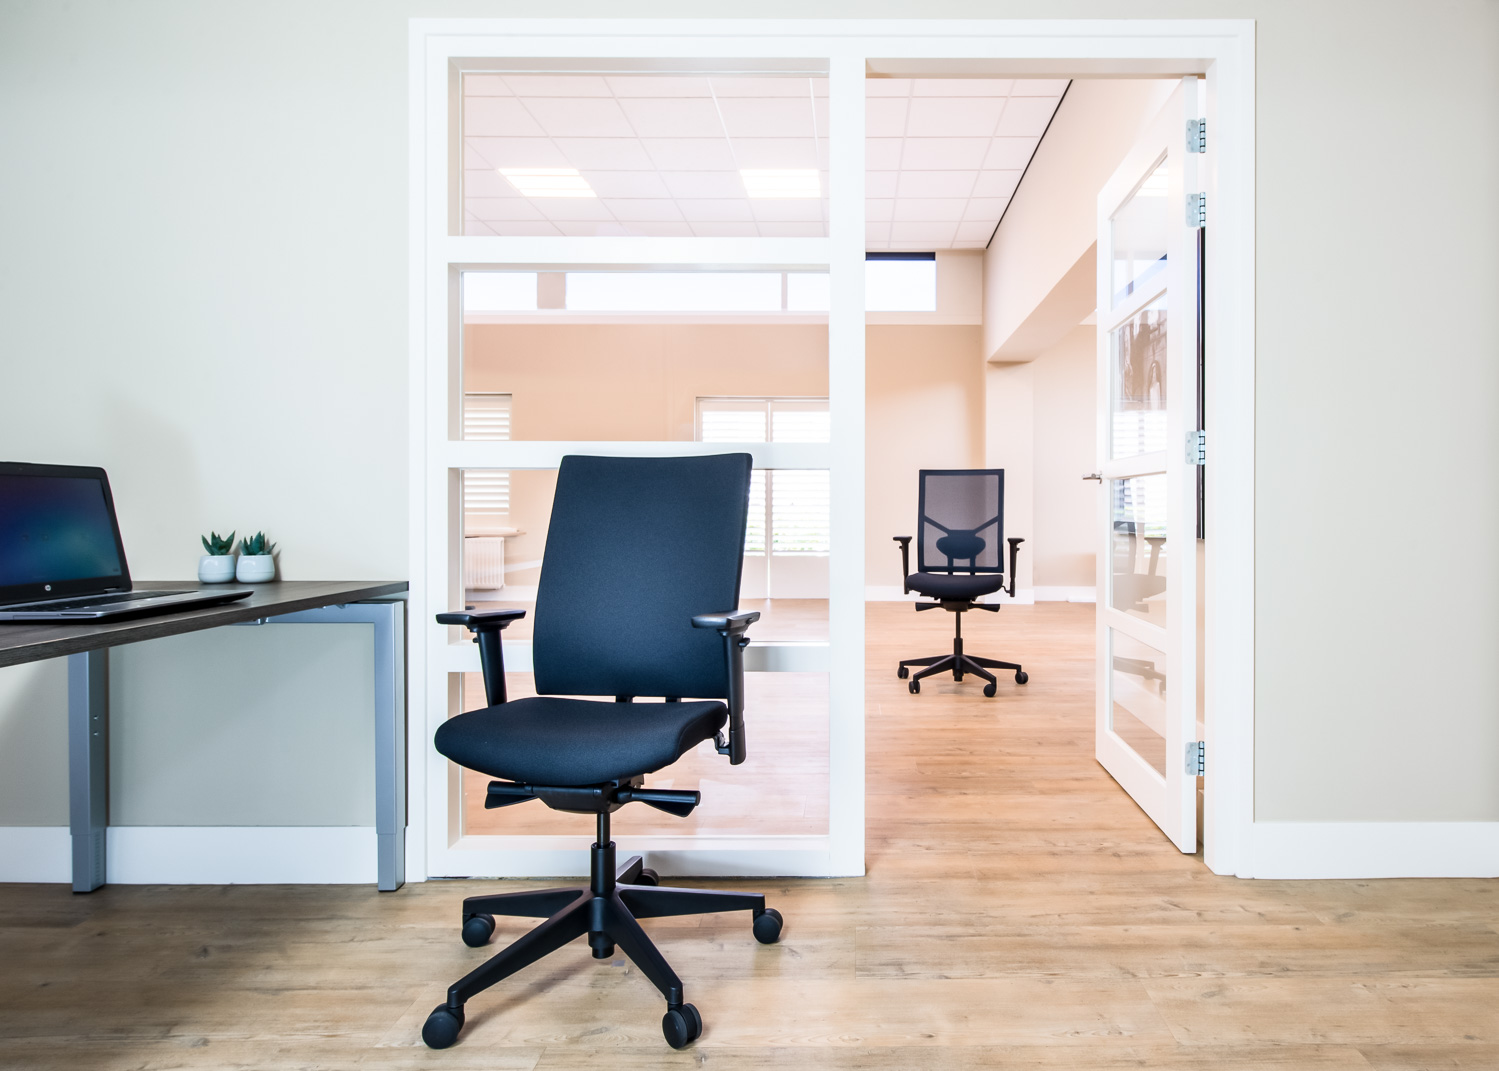 Chairsupply in pCon.catalog - Chairs for every task